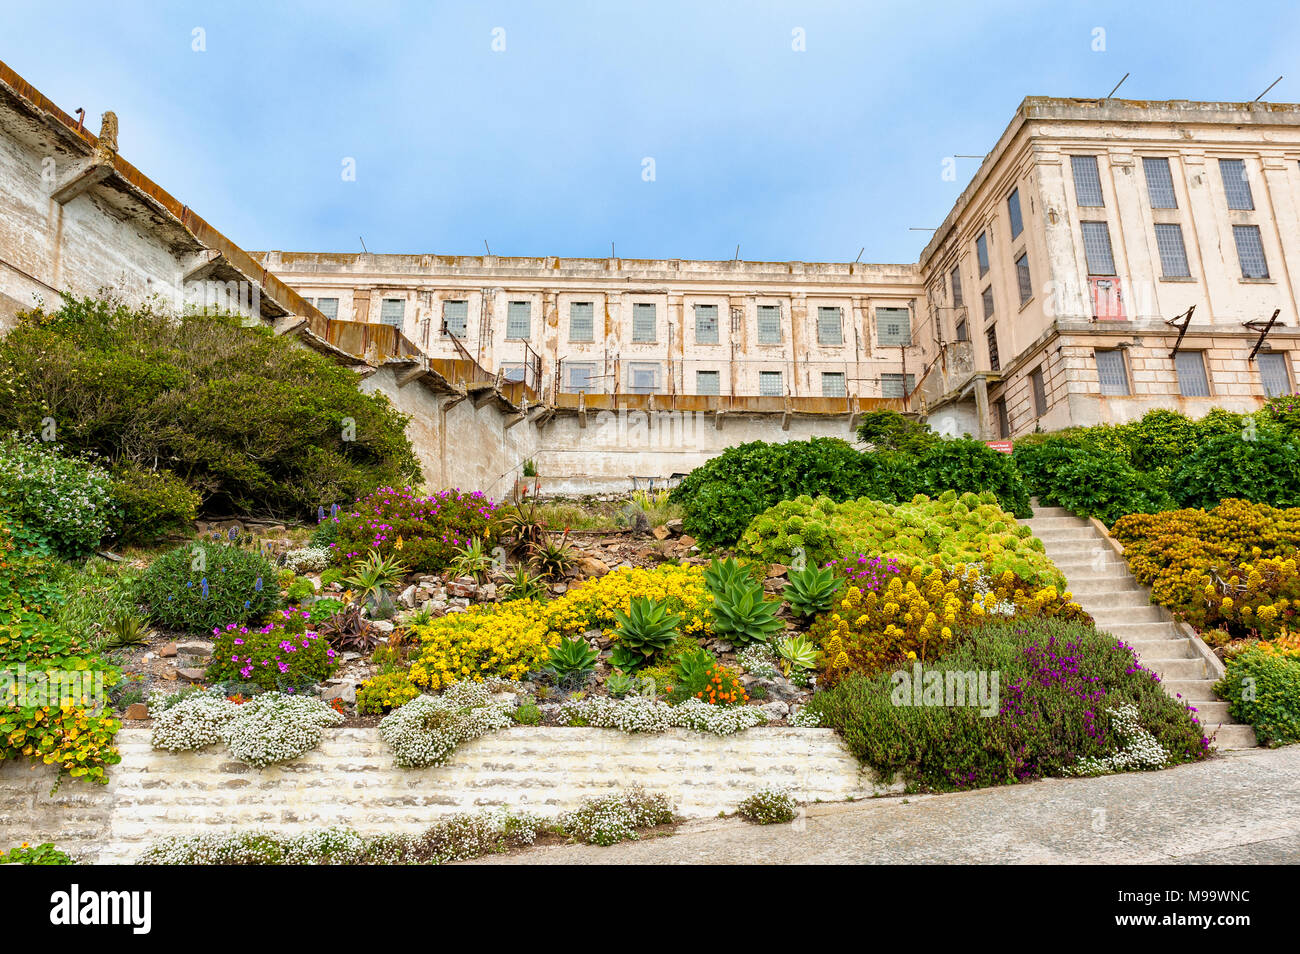 Prisoner Gardens on Alcatraz Island in the San Francisco Bay, California, USA. Alcatraz Island houses an abandoned prison and is now a museum. - Stock Image